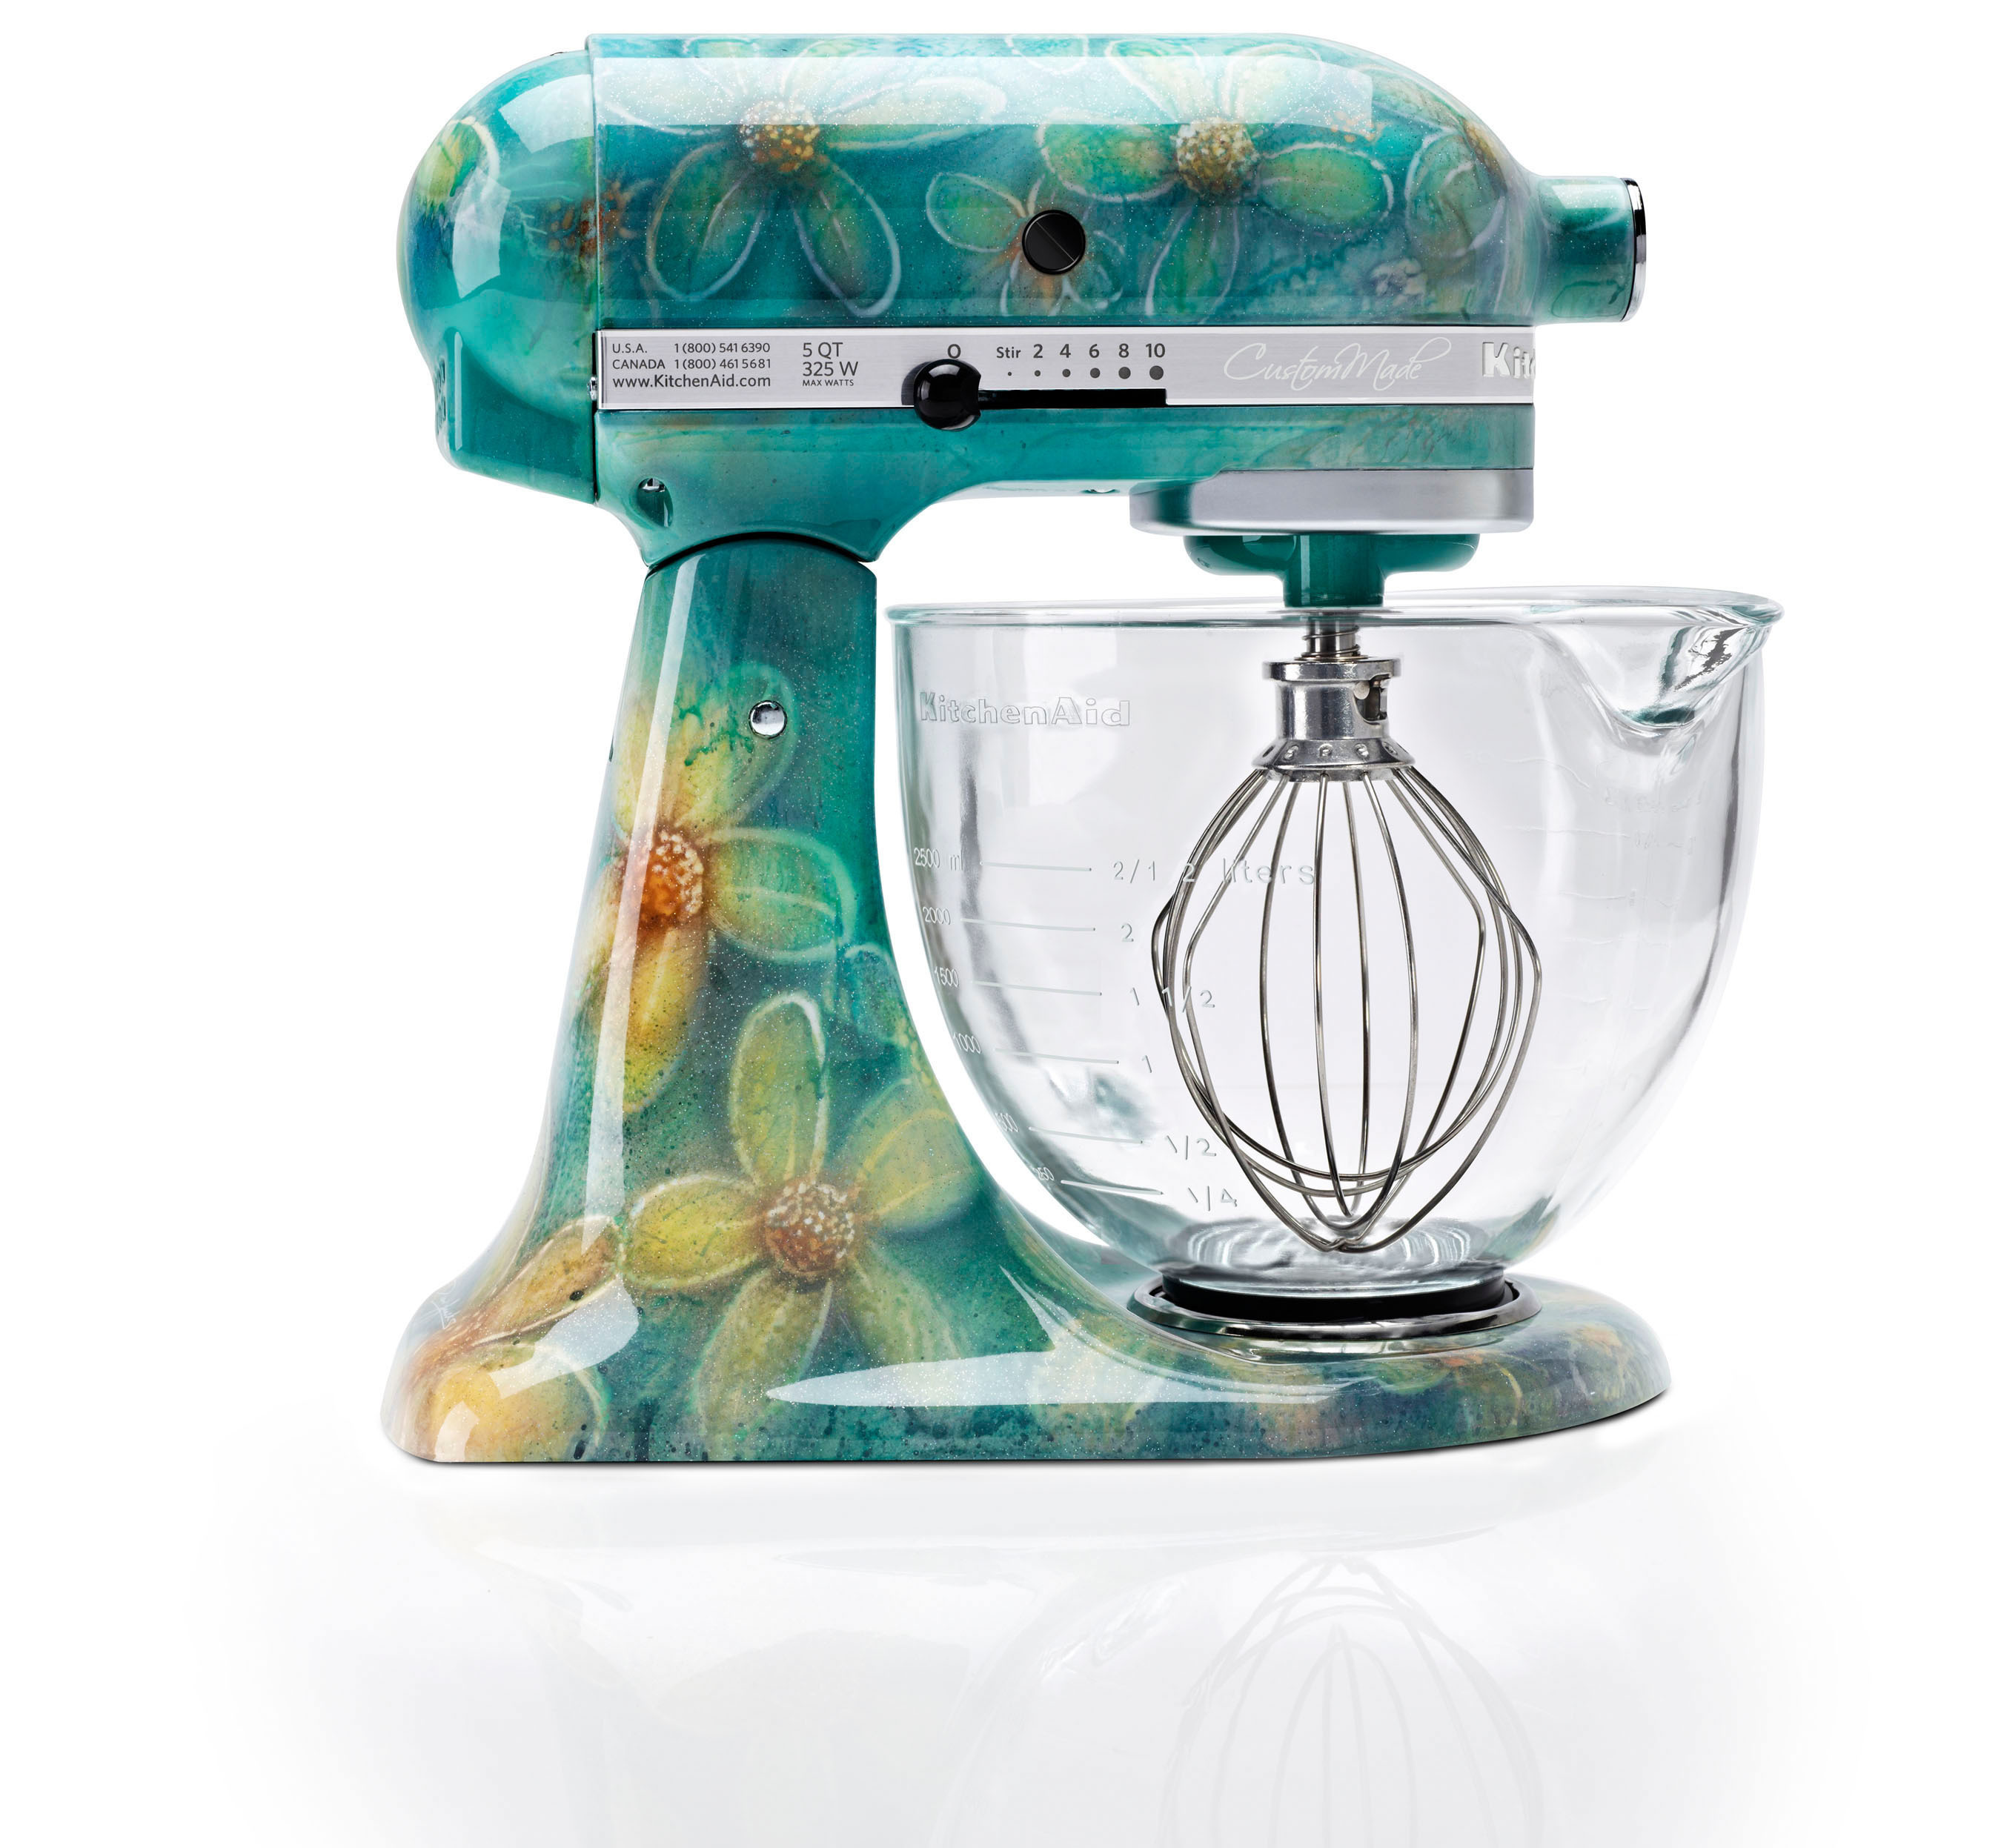 KitchenAid Will Offer Hand Painted, Limited Editions Of Its Iconic Stand  Mixer For The Holiday Season. The Six Original Designs Include Leopard, ...